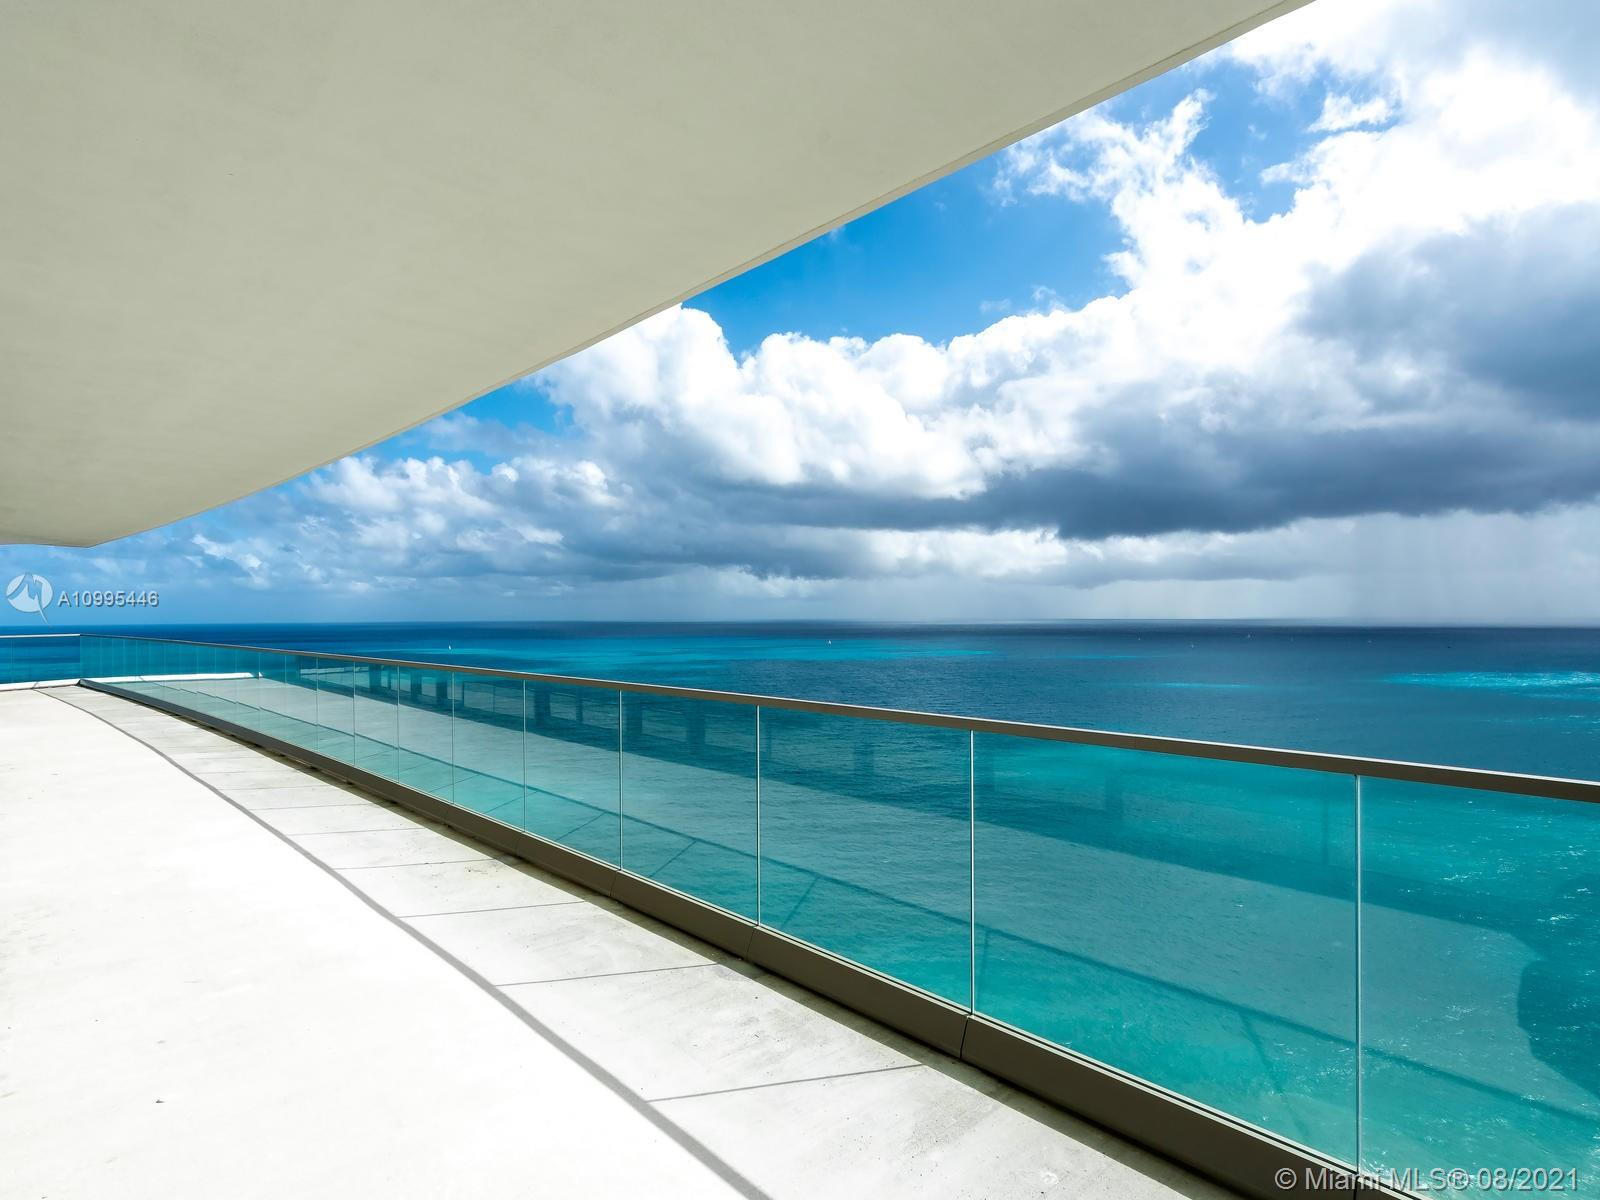 The new Residences by Armani Casa is Sunny Isles Beach's most coveted and prestigious beachfront building. This unique and spacious FULLY FINISHED 4 bedroom, 5 and a half bathroom residence on a high floor with its wraparound balcony and floor to ceiling windows offers the most magnificent panoramic views of the Ocean and the City sunrise to sunset. Italian porcelain floors, electric blinds, fully finished closets and lighting.  Live the resort lifestyle with unparalleled service that includes an oceanfront pool and bar, restaurant, spa and fitness center, large lobby and lounge bar, cigar and wine room, children's play area, concierge, security, and valet.